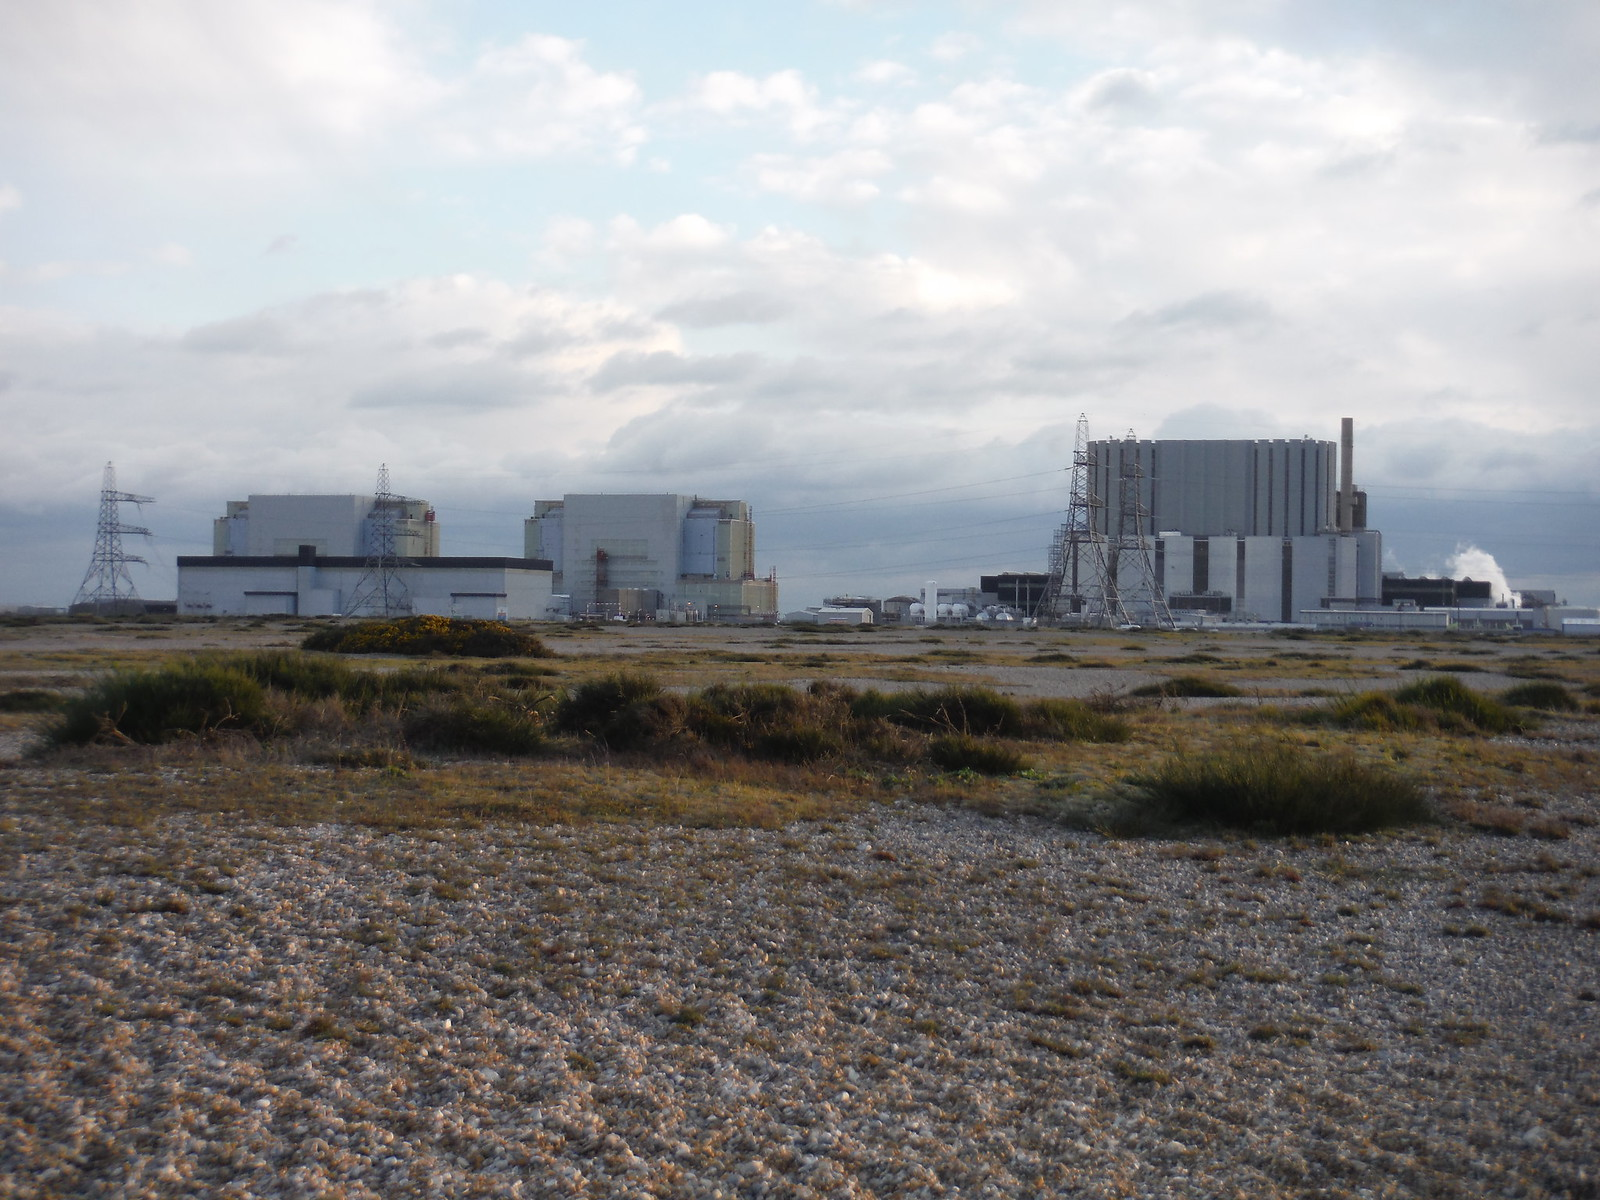 Dungeness Power Plant from Dungeness NNR SWC 154 - Rye to Dungeness and Lydd-on-Sea or Lydd or Circular (Lydd Ending)